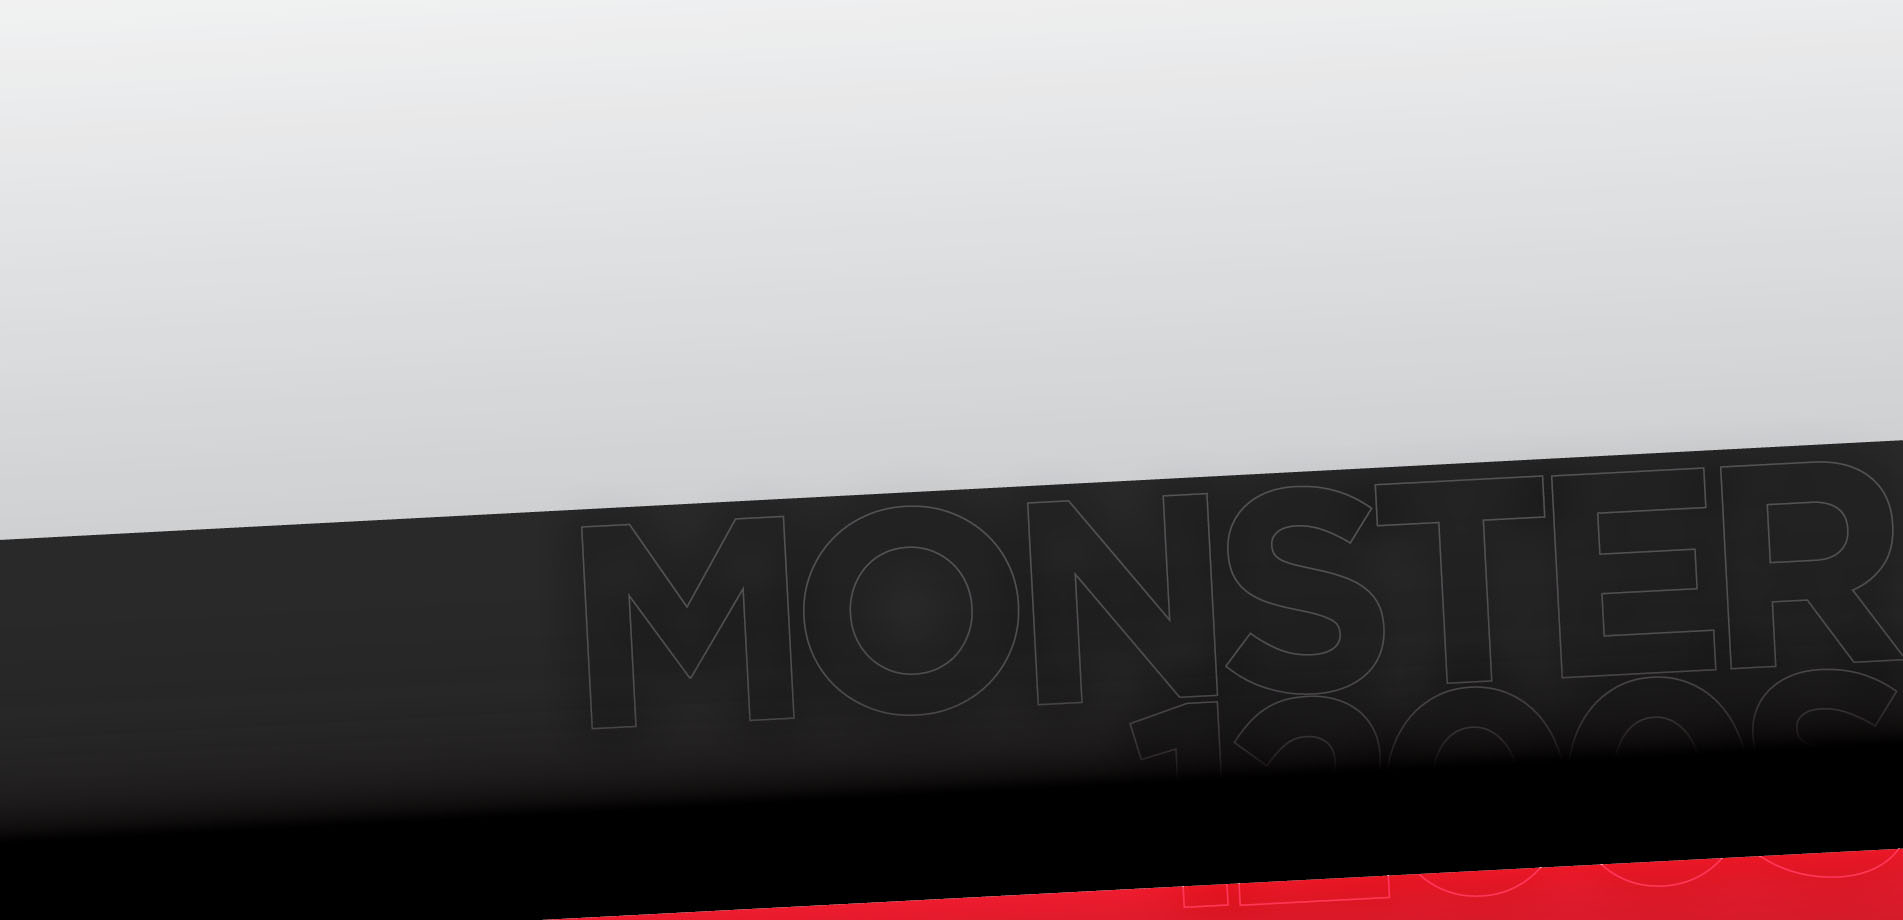 BKG-Banners-M1200S